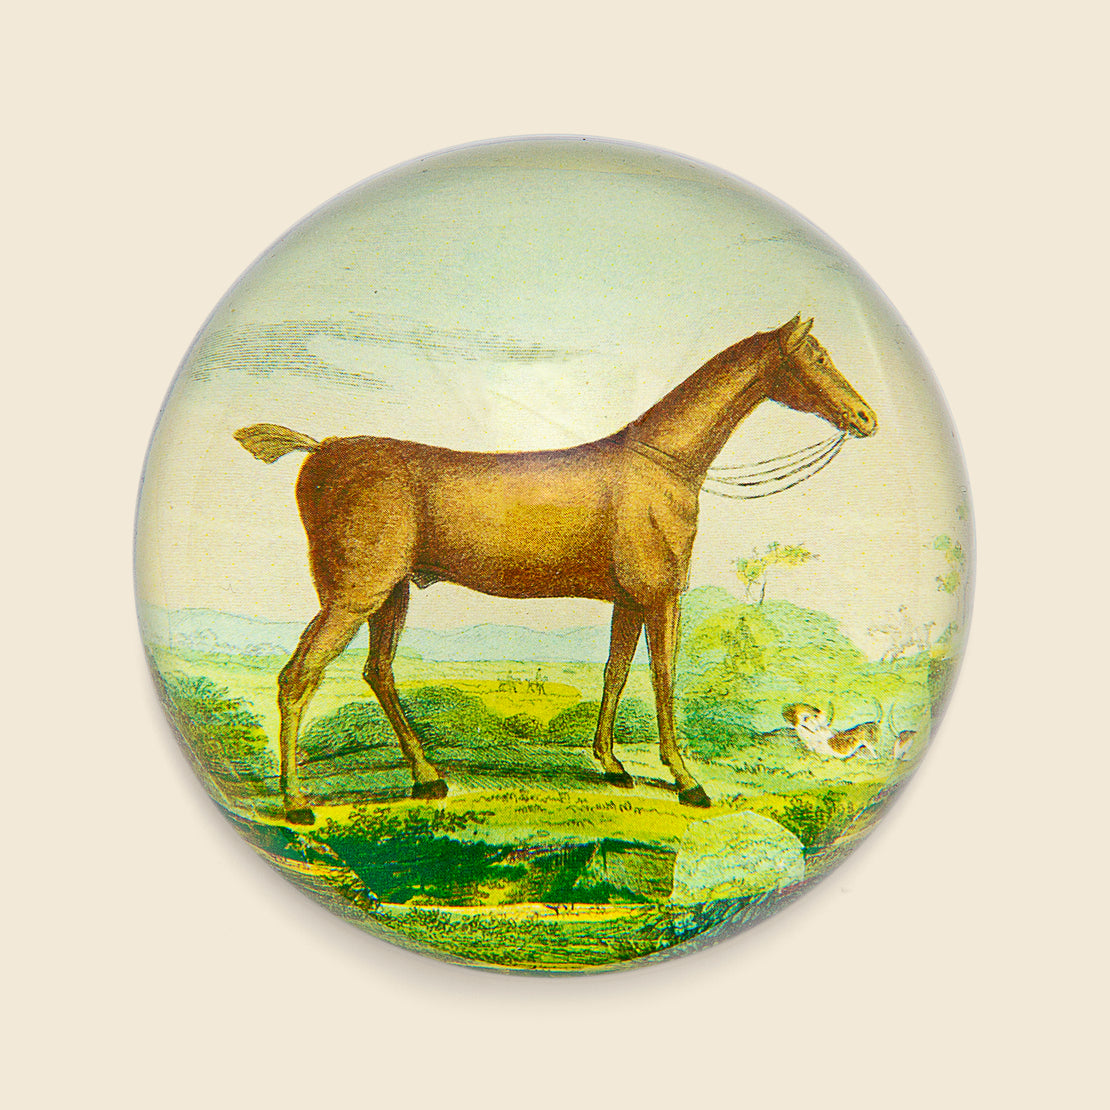 John Derian Dome Paperweight - Brown Horse